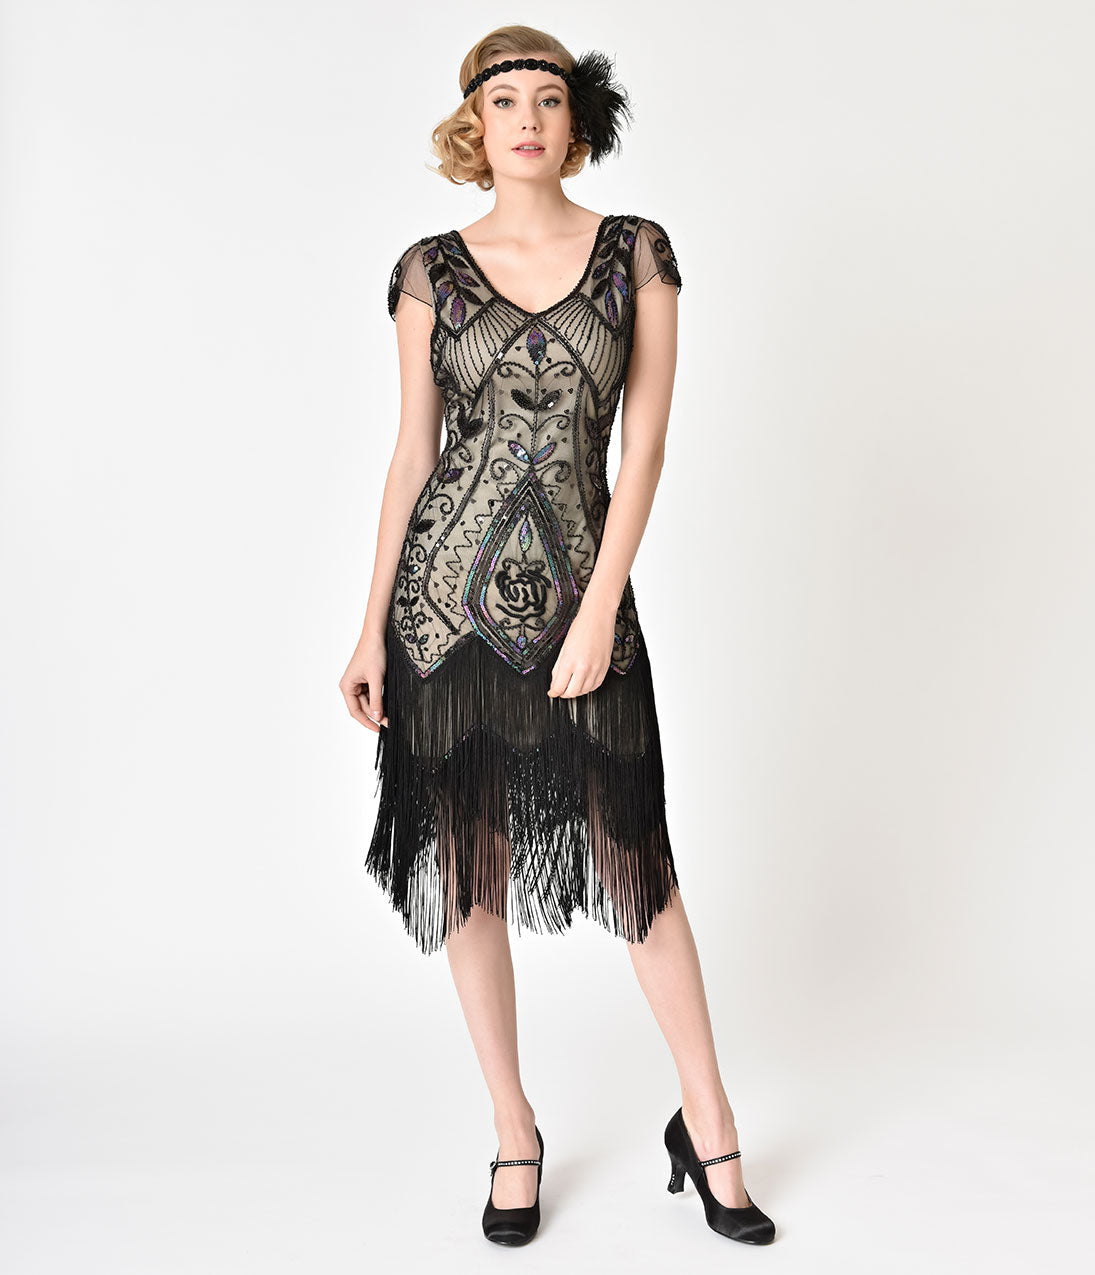 1920s Costumes: Flapper, Great Gatsby, Gangster Girl Unique Vintage 1920S Black Rose  Champagne Noele Fringe Flapper Dress $98.00 AT vintagedancer.com